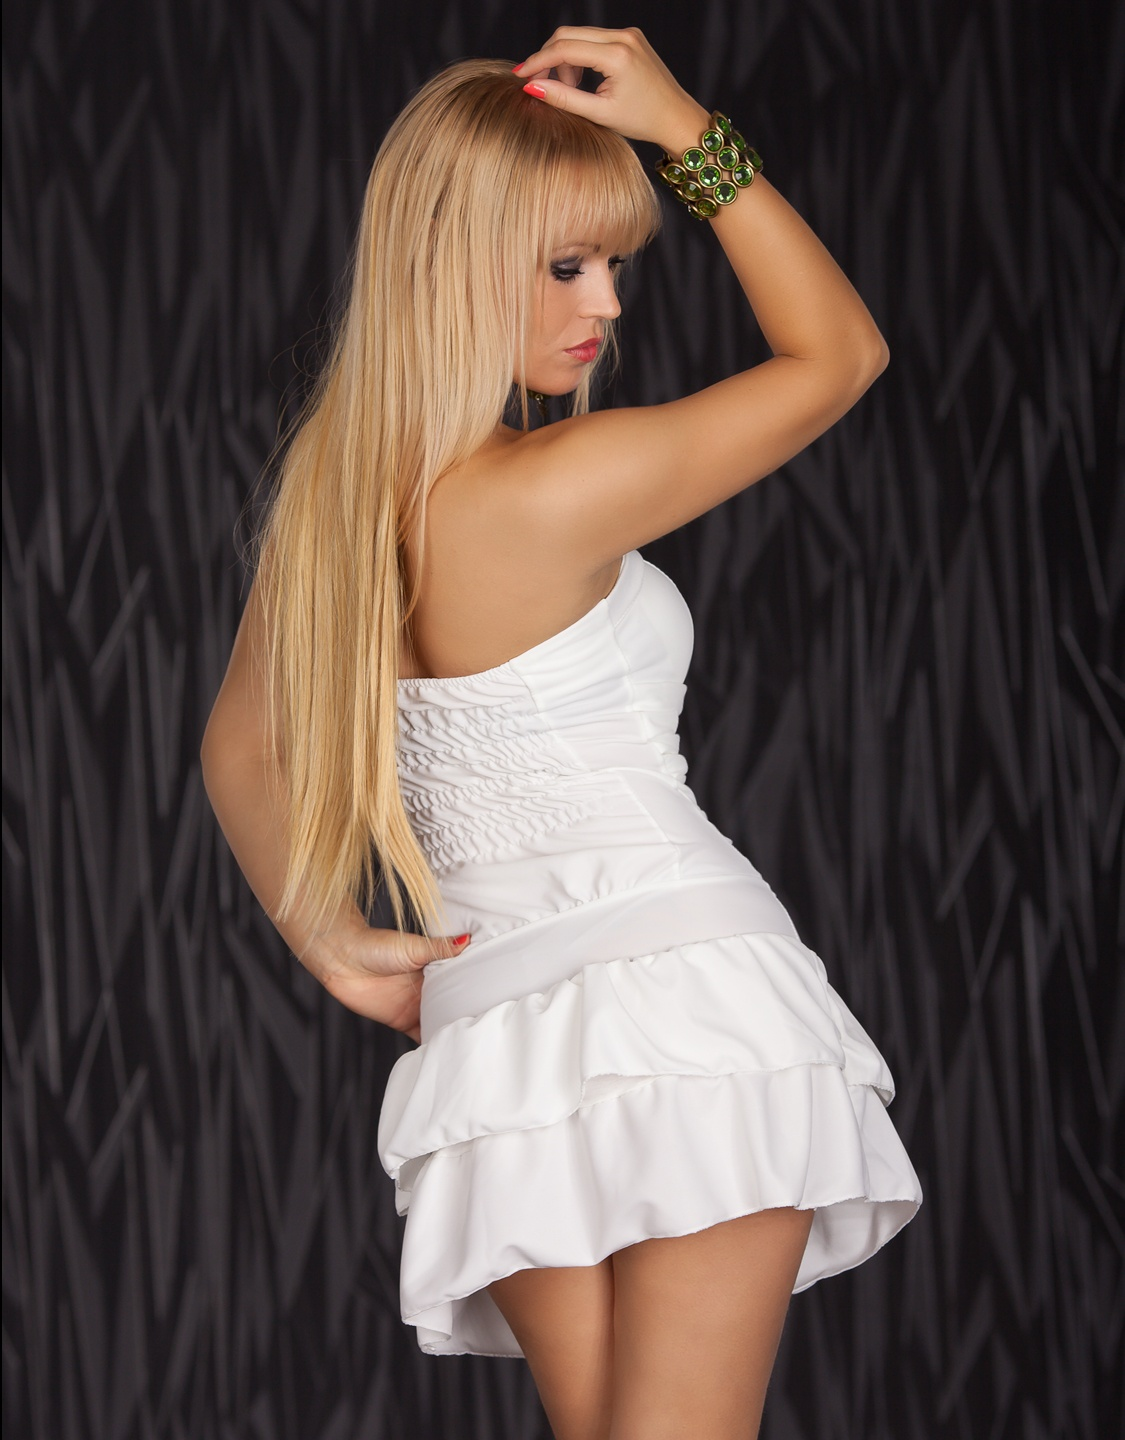 White Strapless Lacing Dress With Flounces